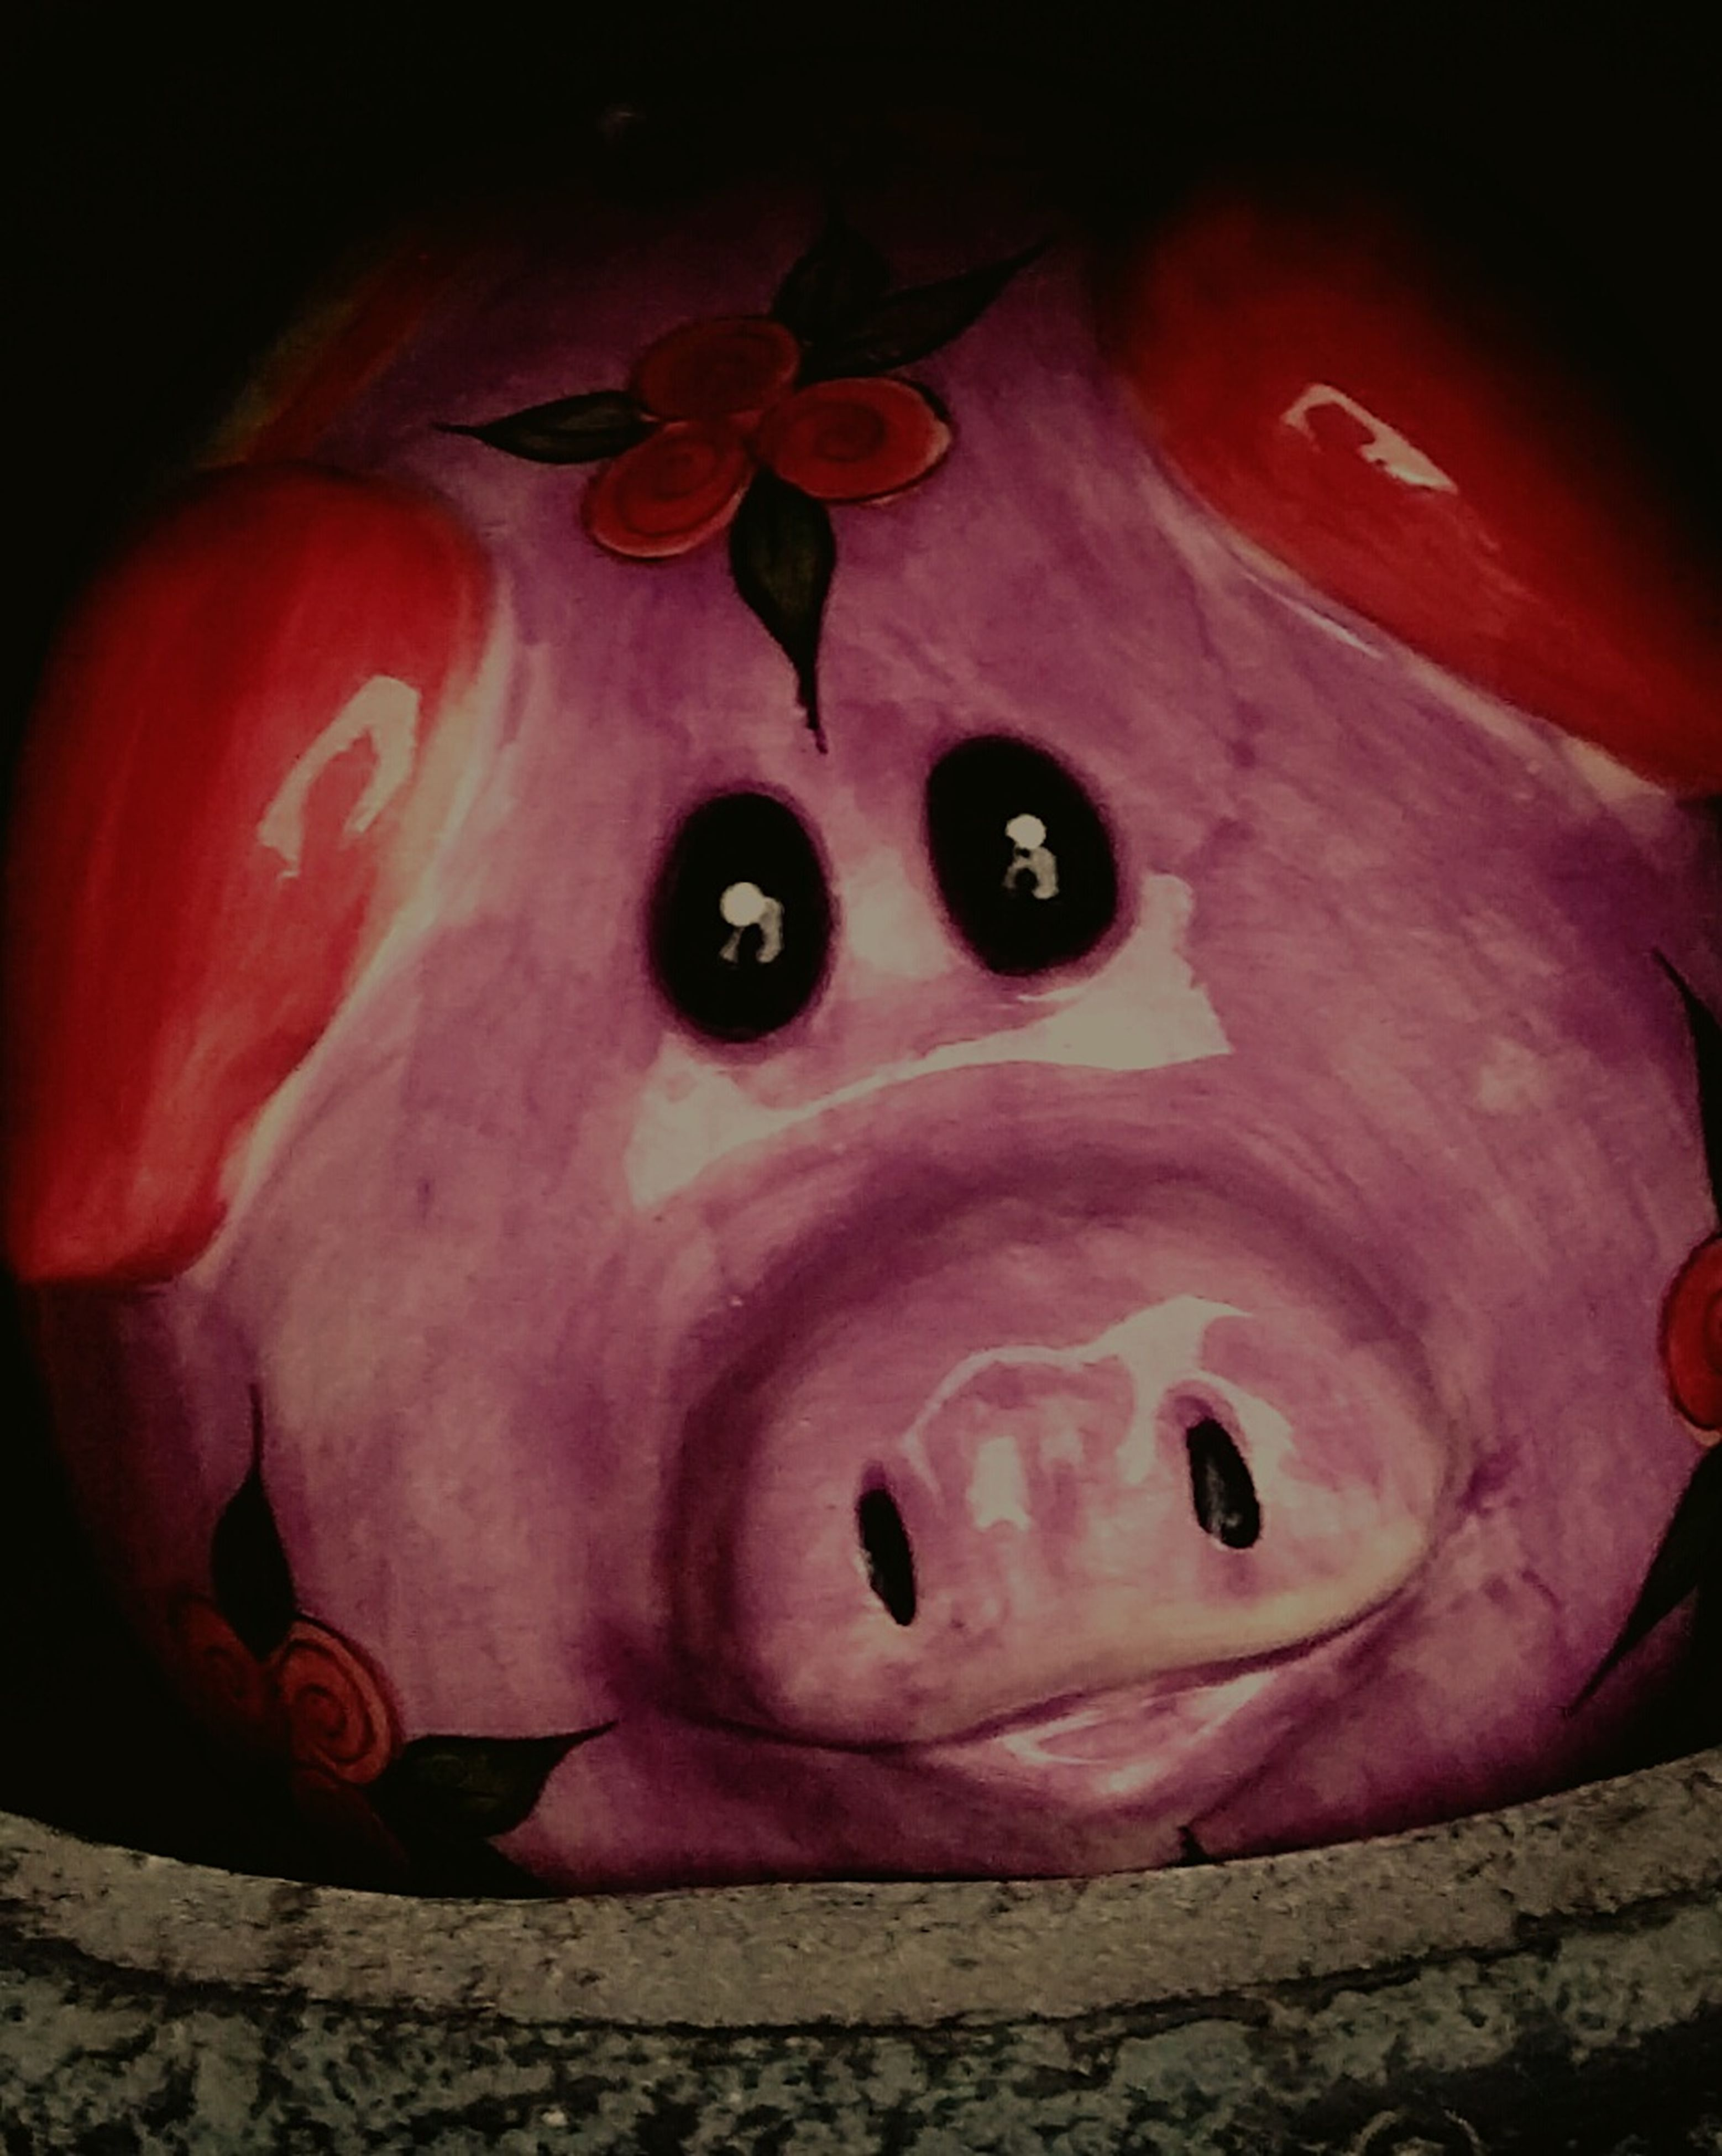 red, indoors, art and craft, art, creativity, close-up, high angle view, human representation, animal representation, anthropomorphic face, still life, no people, toy, pink color, halloween, single object, night, wall - building feature, craft, tradition